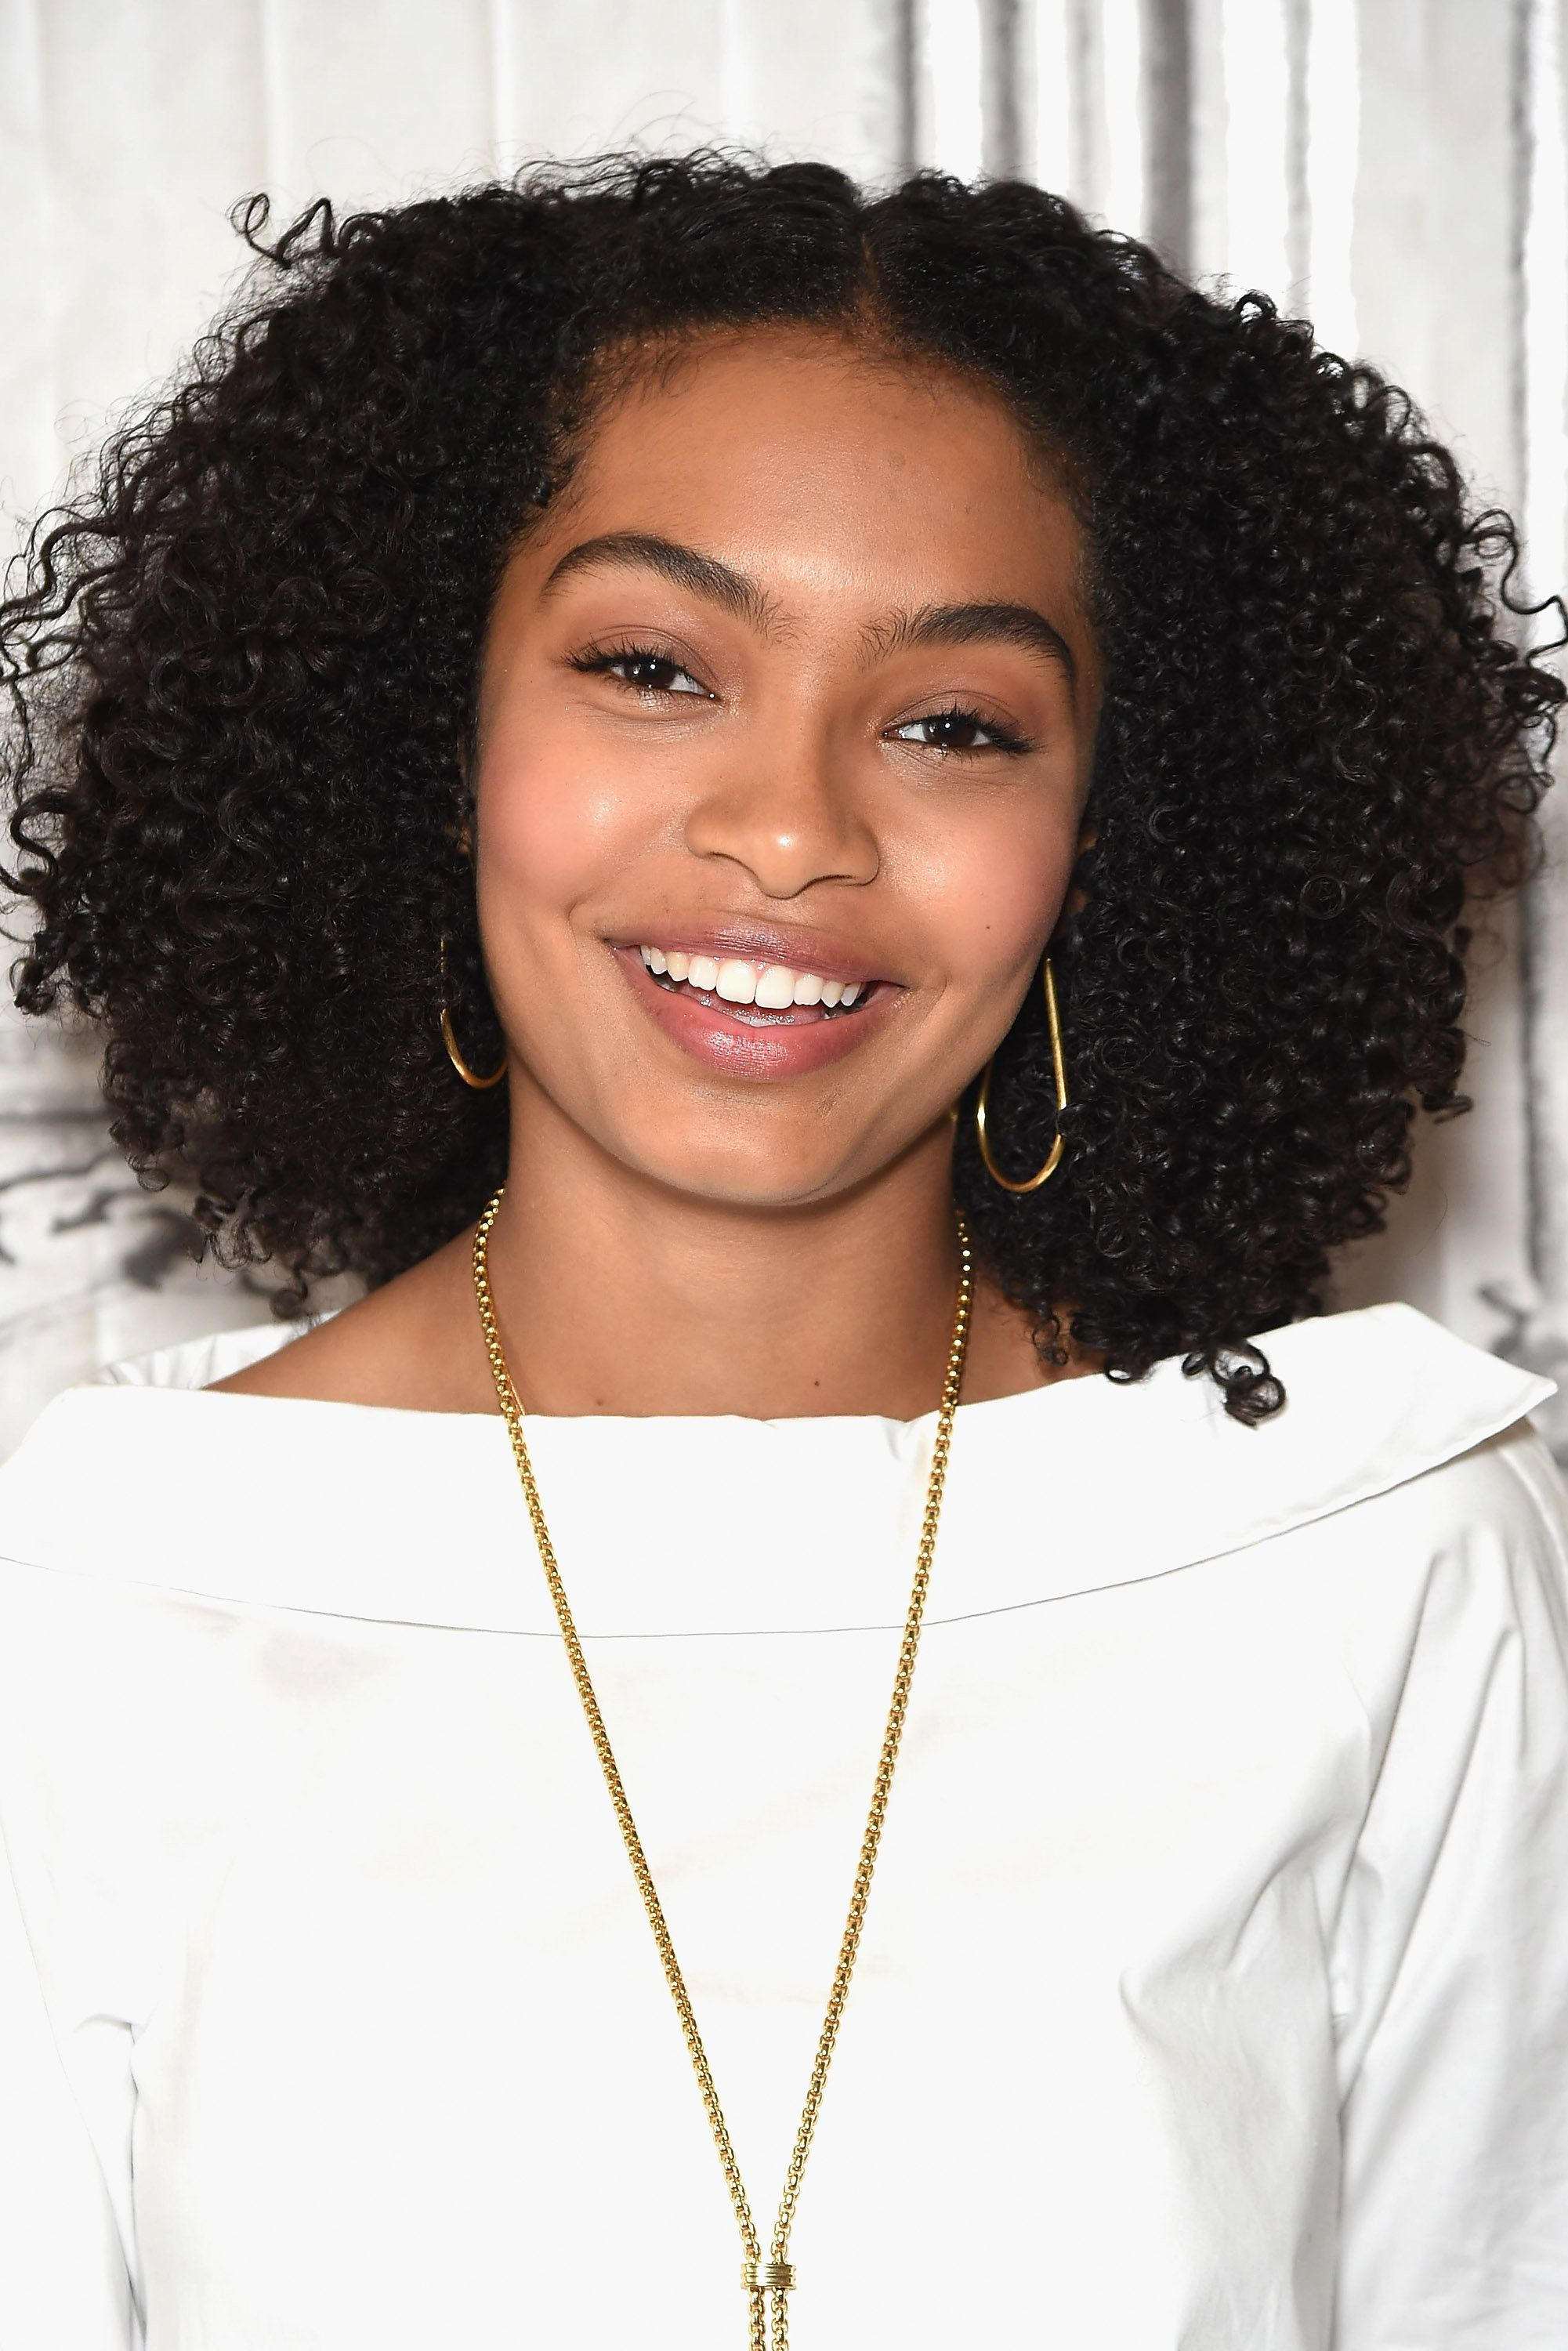 NEW YORK, NY - APRIL 05:  Actress Yara Shahidi attends the Build Series to discuss the comedy show 'Black-ish' at Build Studio on April 5, 2017 in New York City.  (Photo by Gary Gershoff/WireImage)